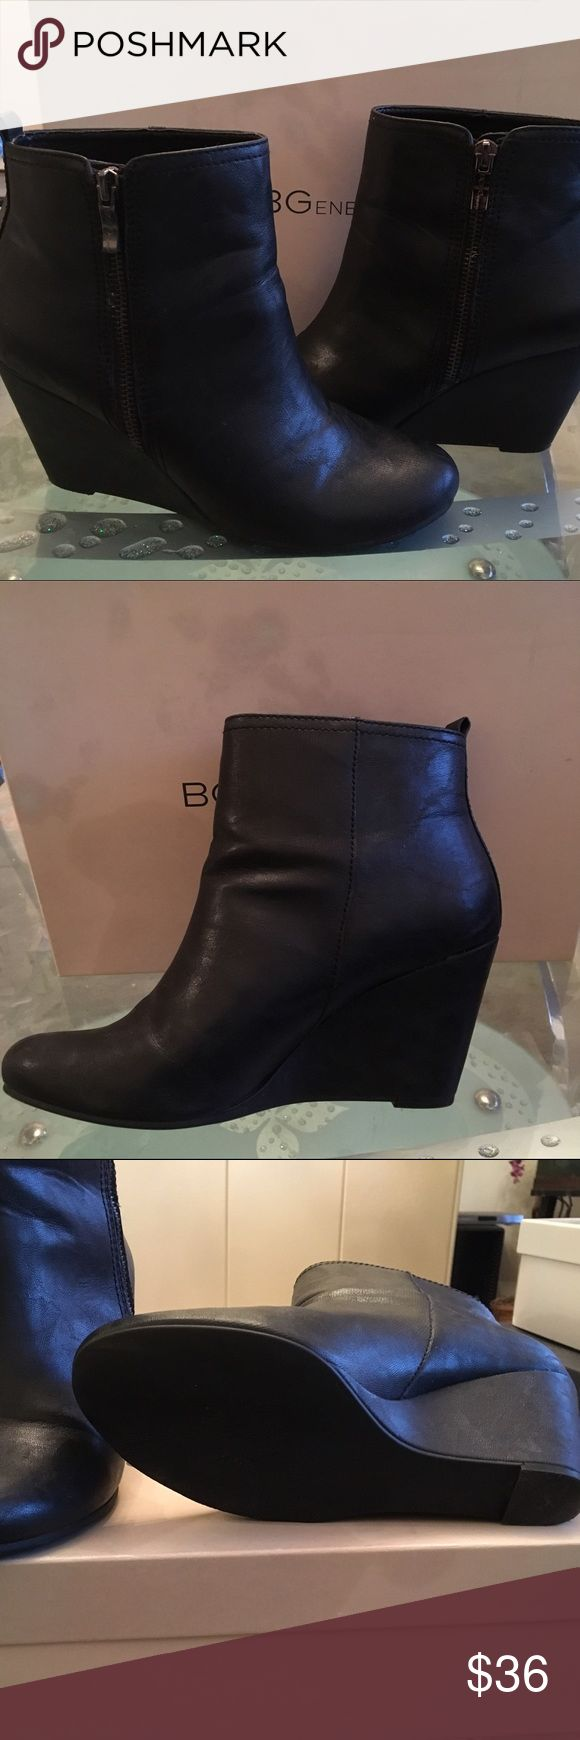 BCBG Wedge Booties BCBG Wedge Bootie .. Good condition, worn only a few times. BCBGeneration Shoes Ankle Boots & Booties